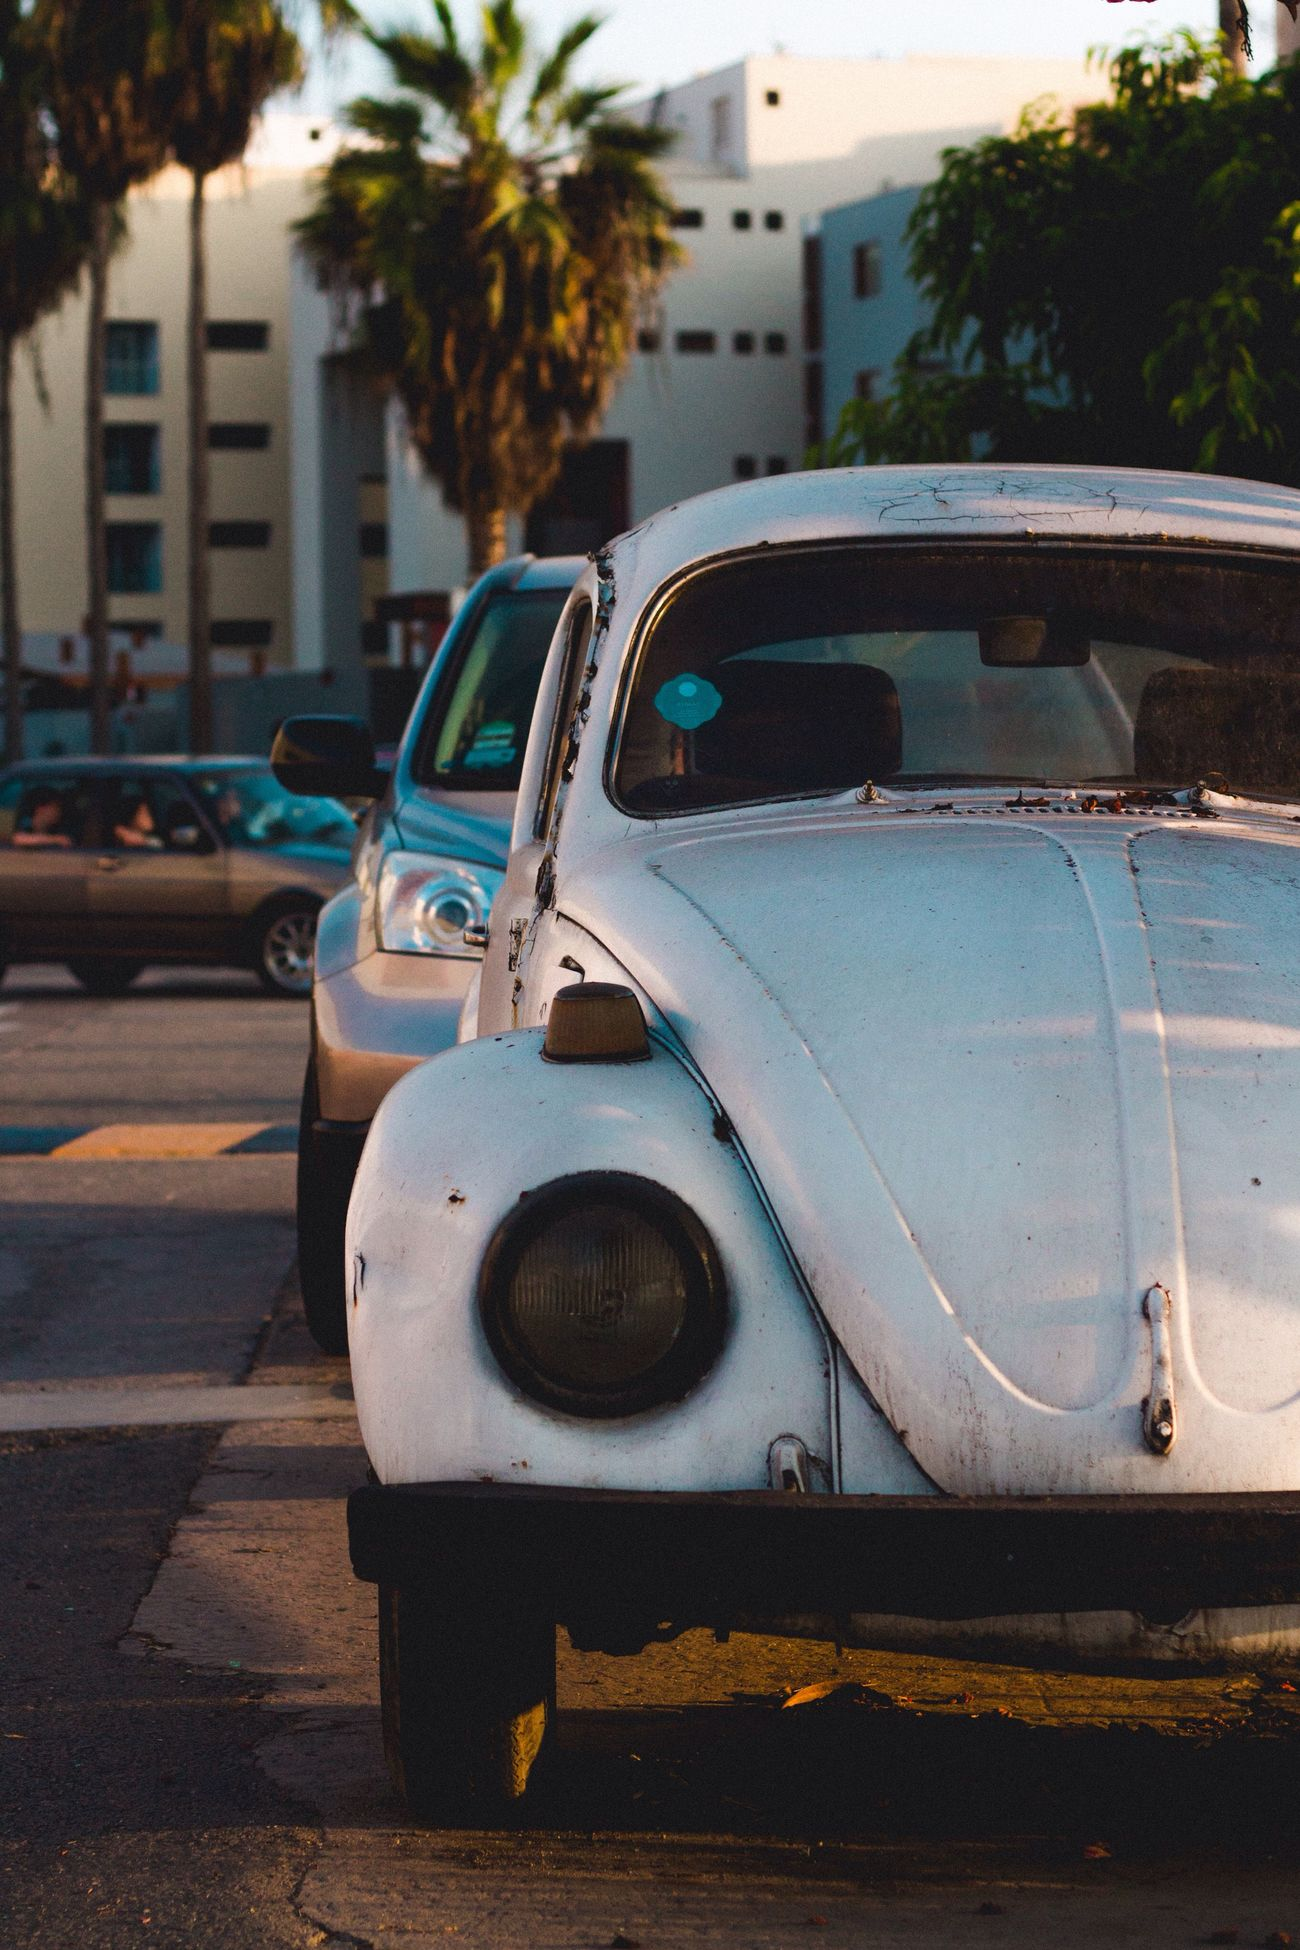 Classic Volkswagen Beetle Car Old-fashioned Vintage Volkswagen Classic Photography Photooftheday Canon Creativity